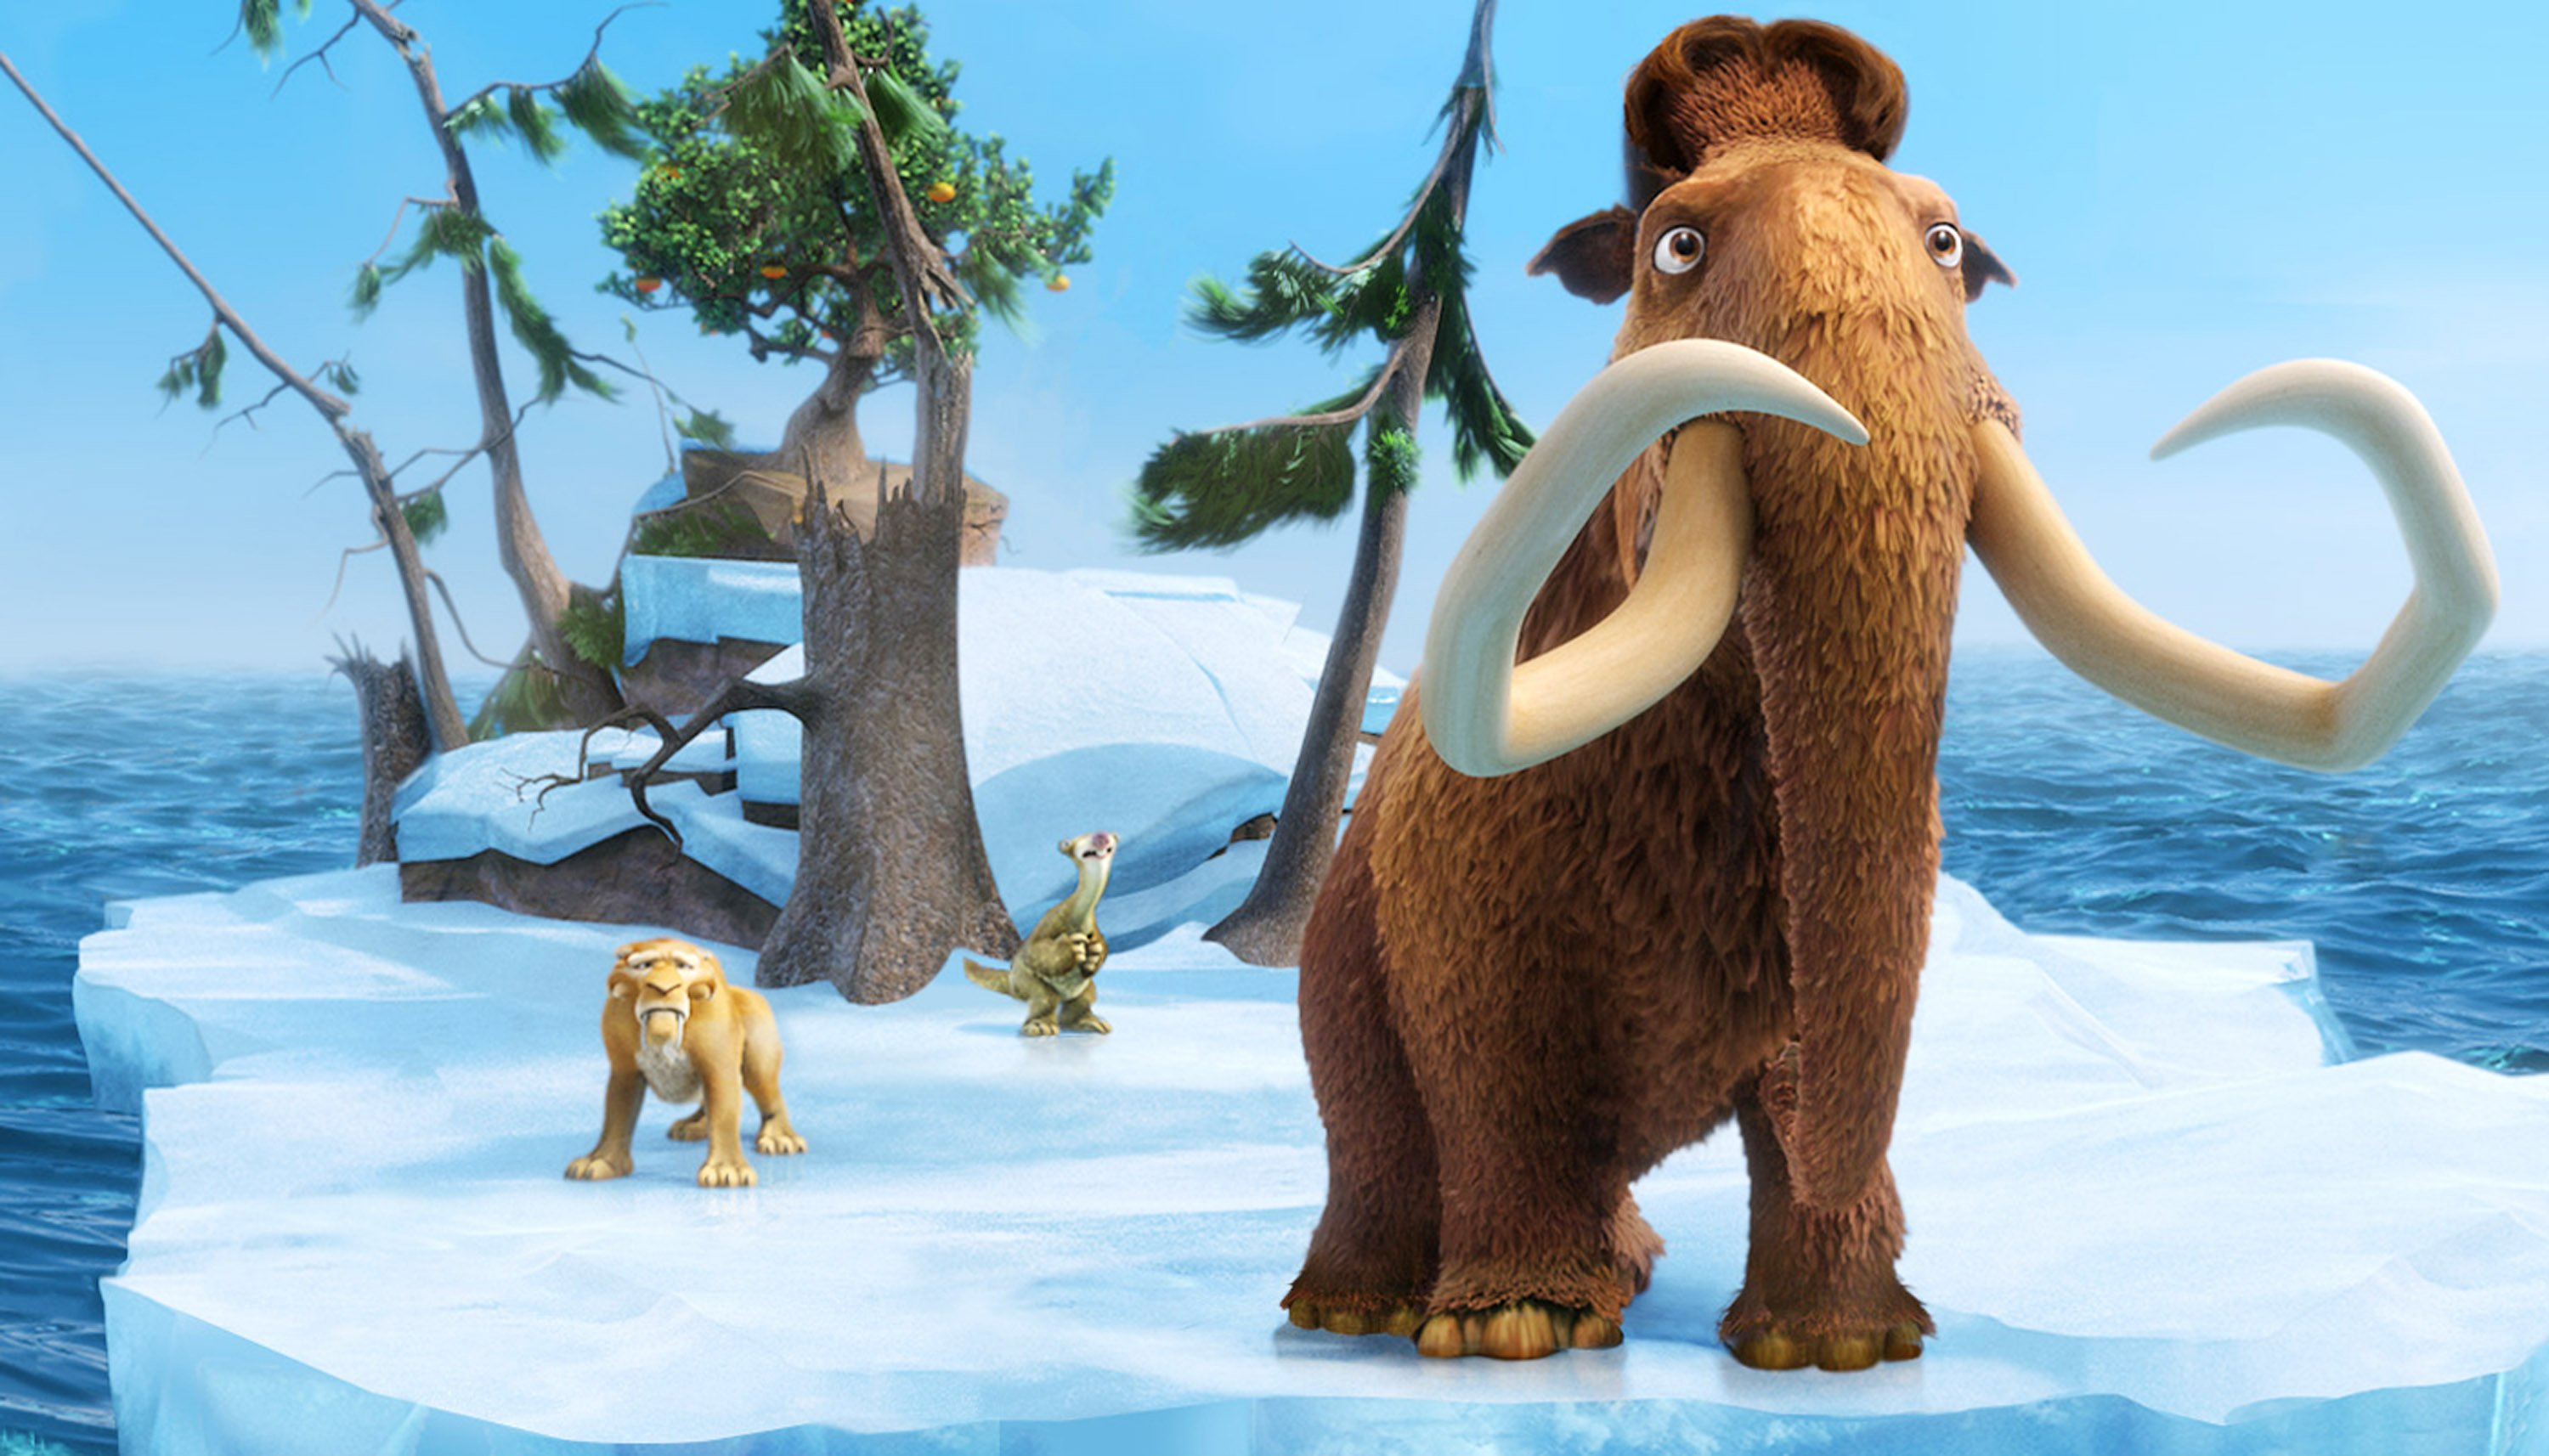 ice age: continental drift' — warm, suspenseful and quite amusing